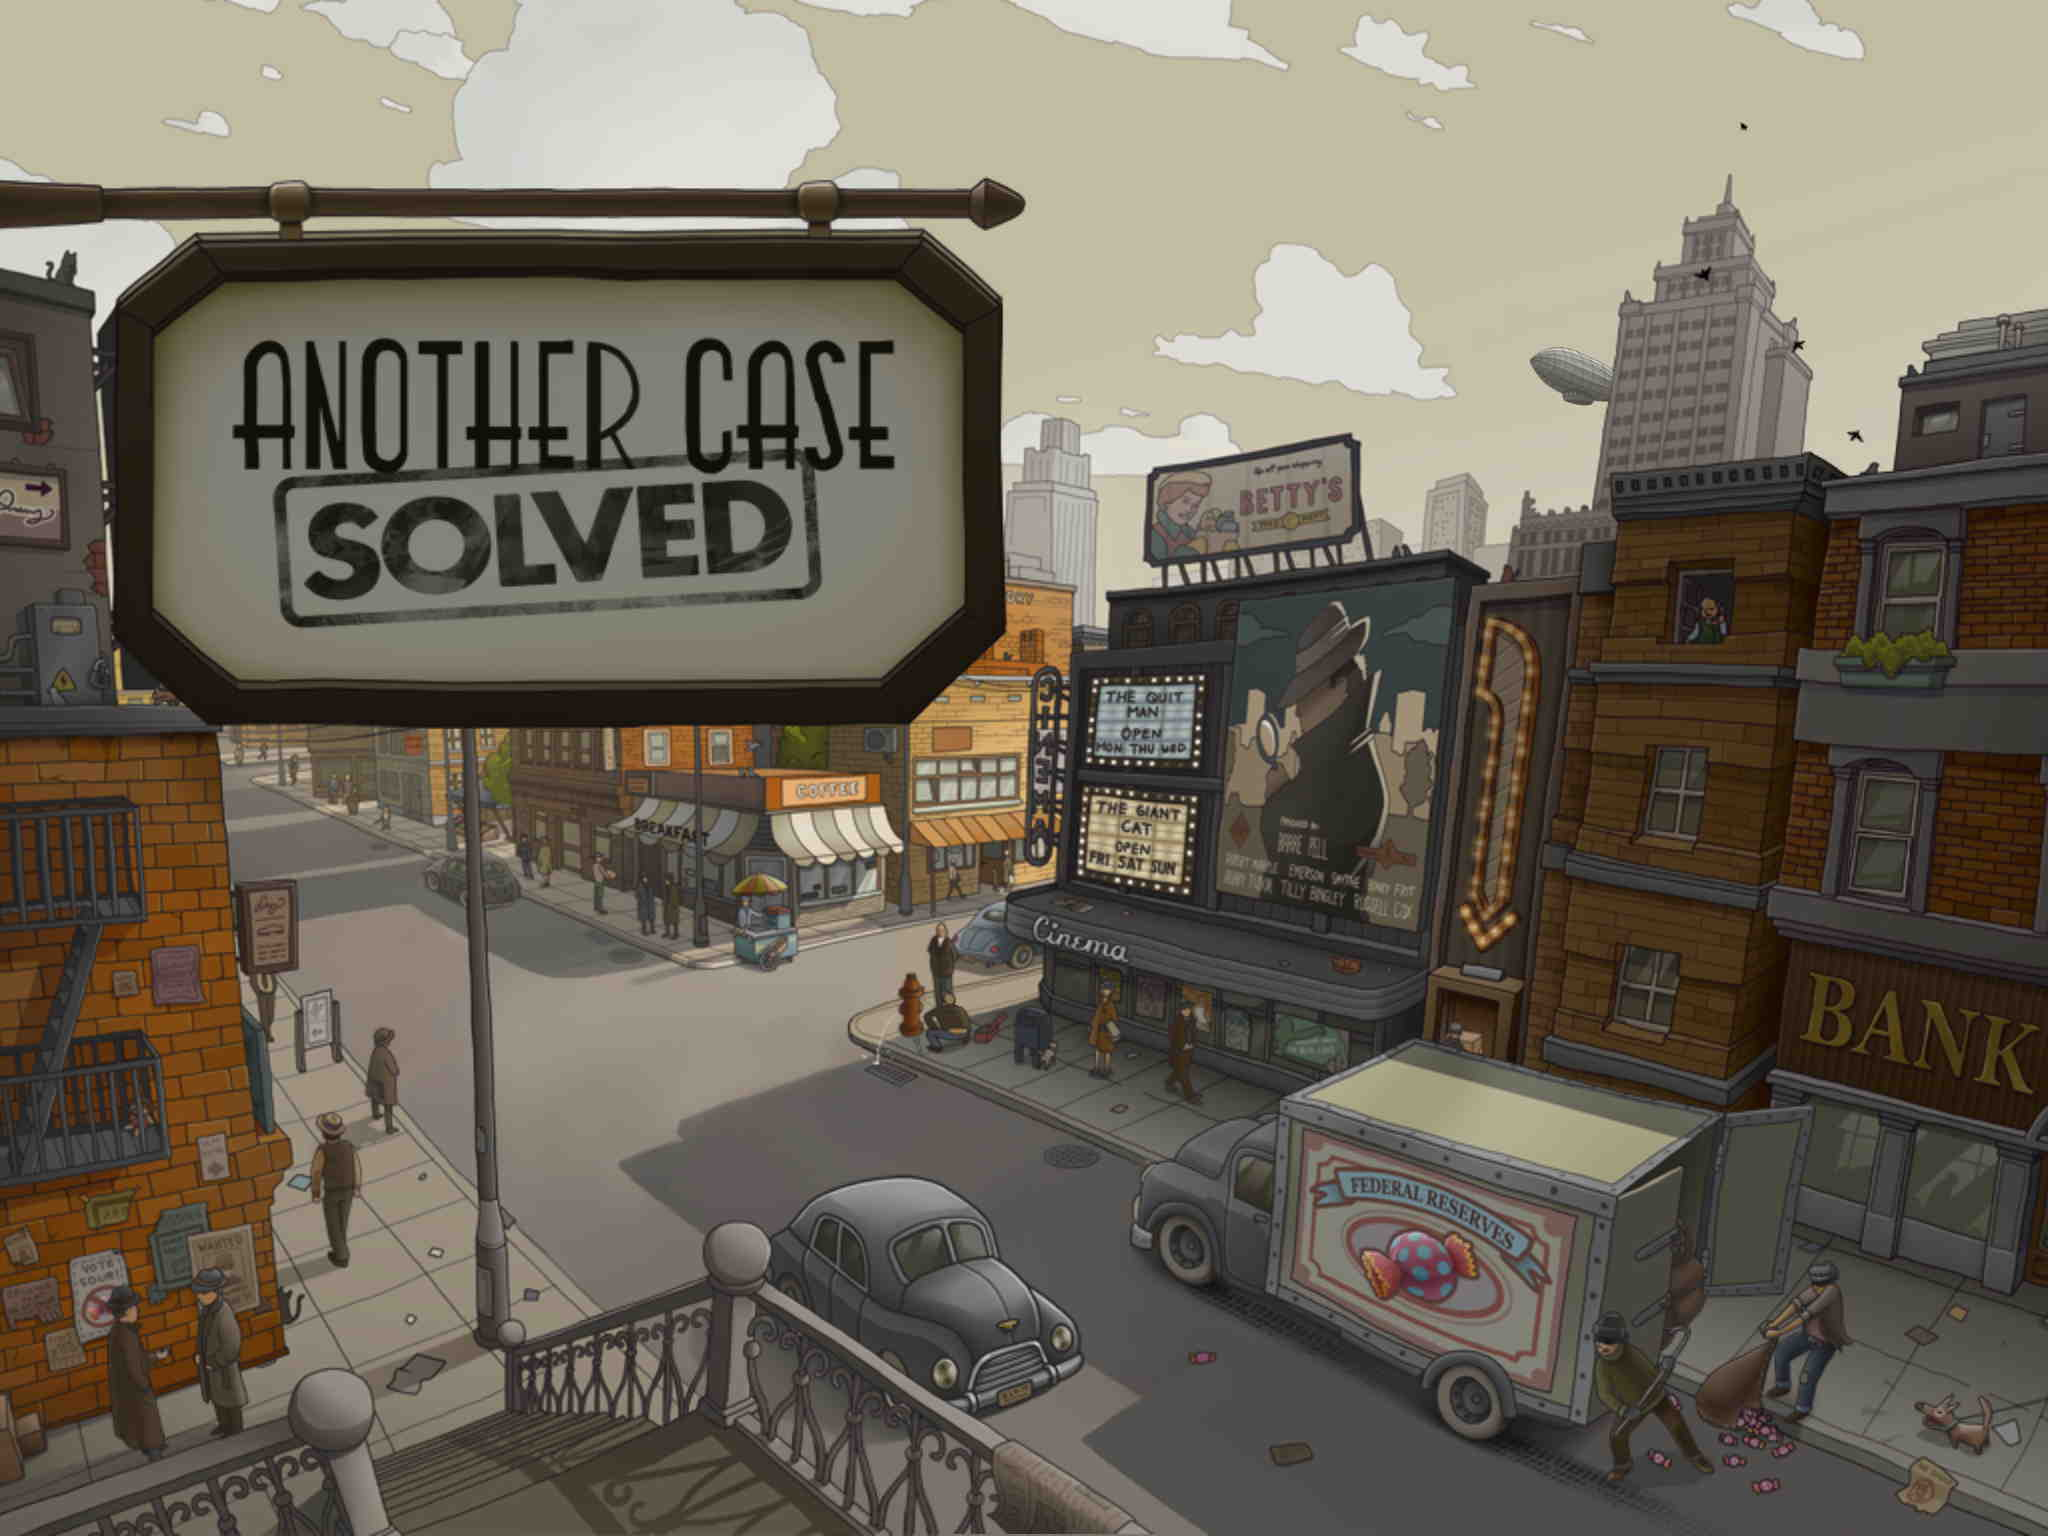 AnotherCaseSolved01